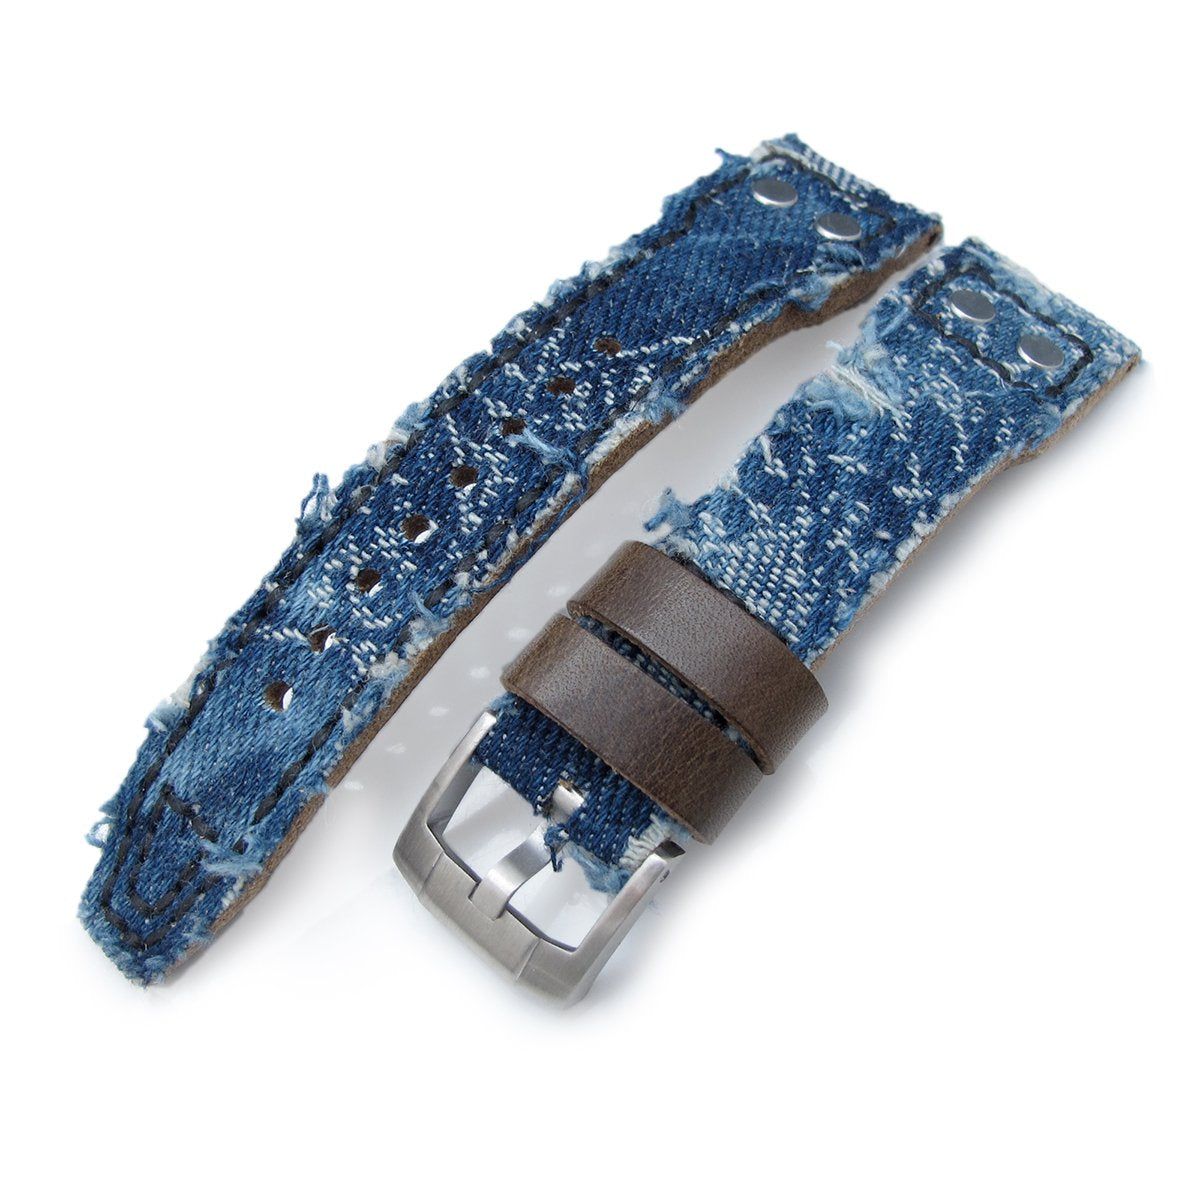 21mm 22mm MiLTAT Heavy Distressed Blue Denim Watch Strap Rivet Military strap Strapcode Watch Bands